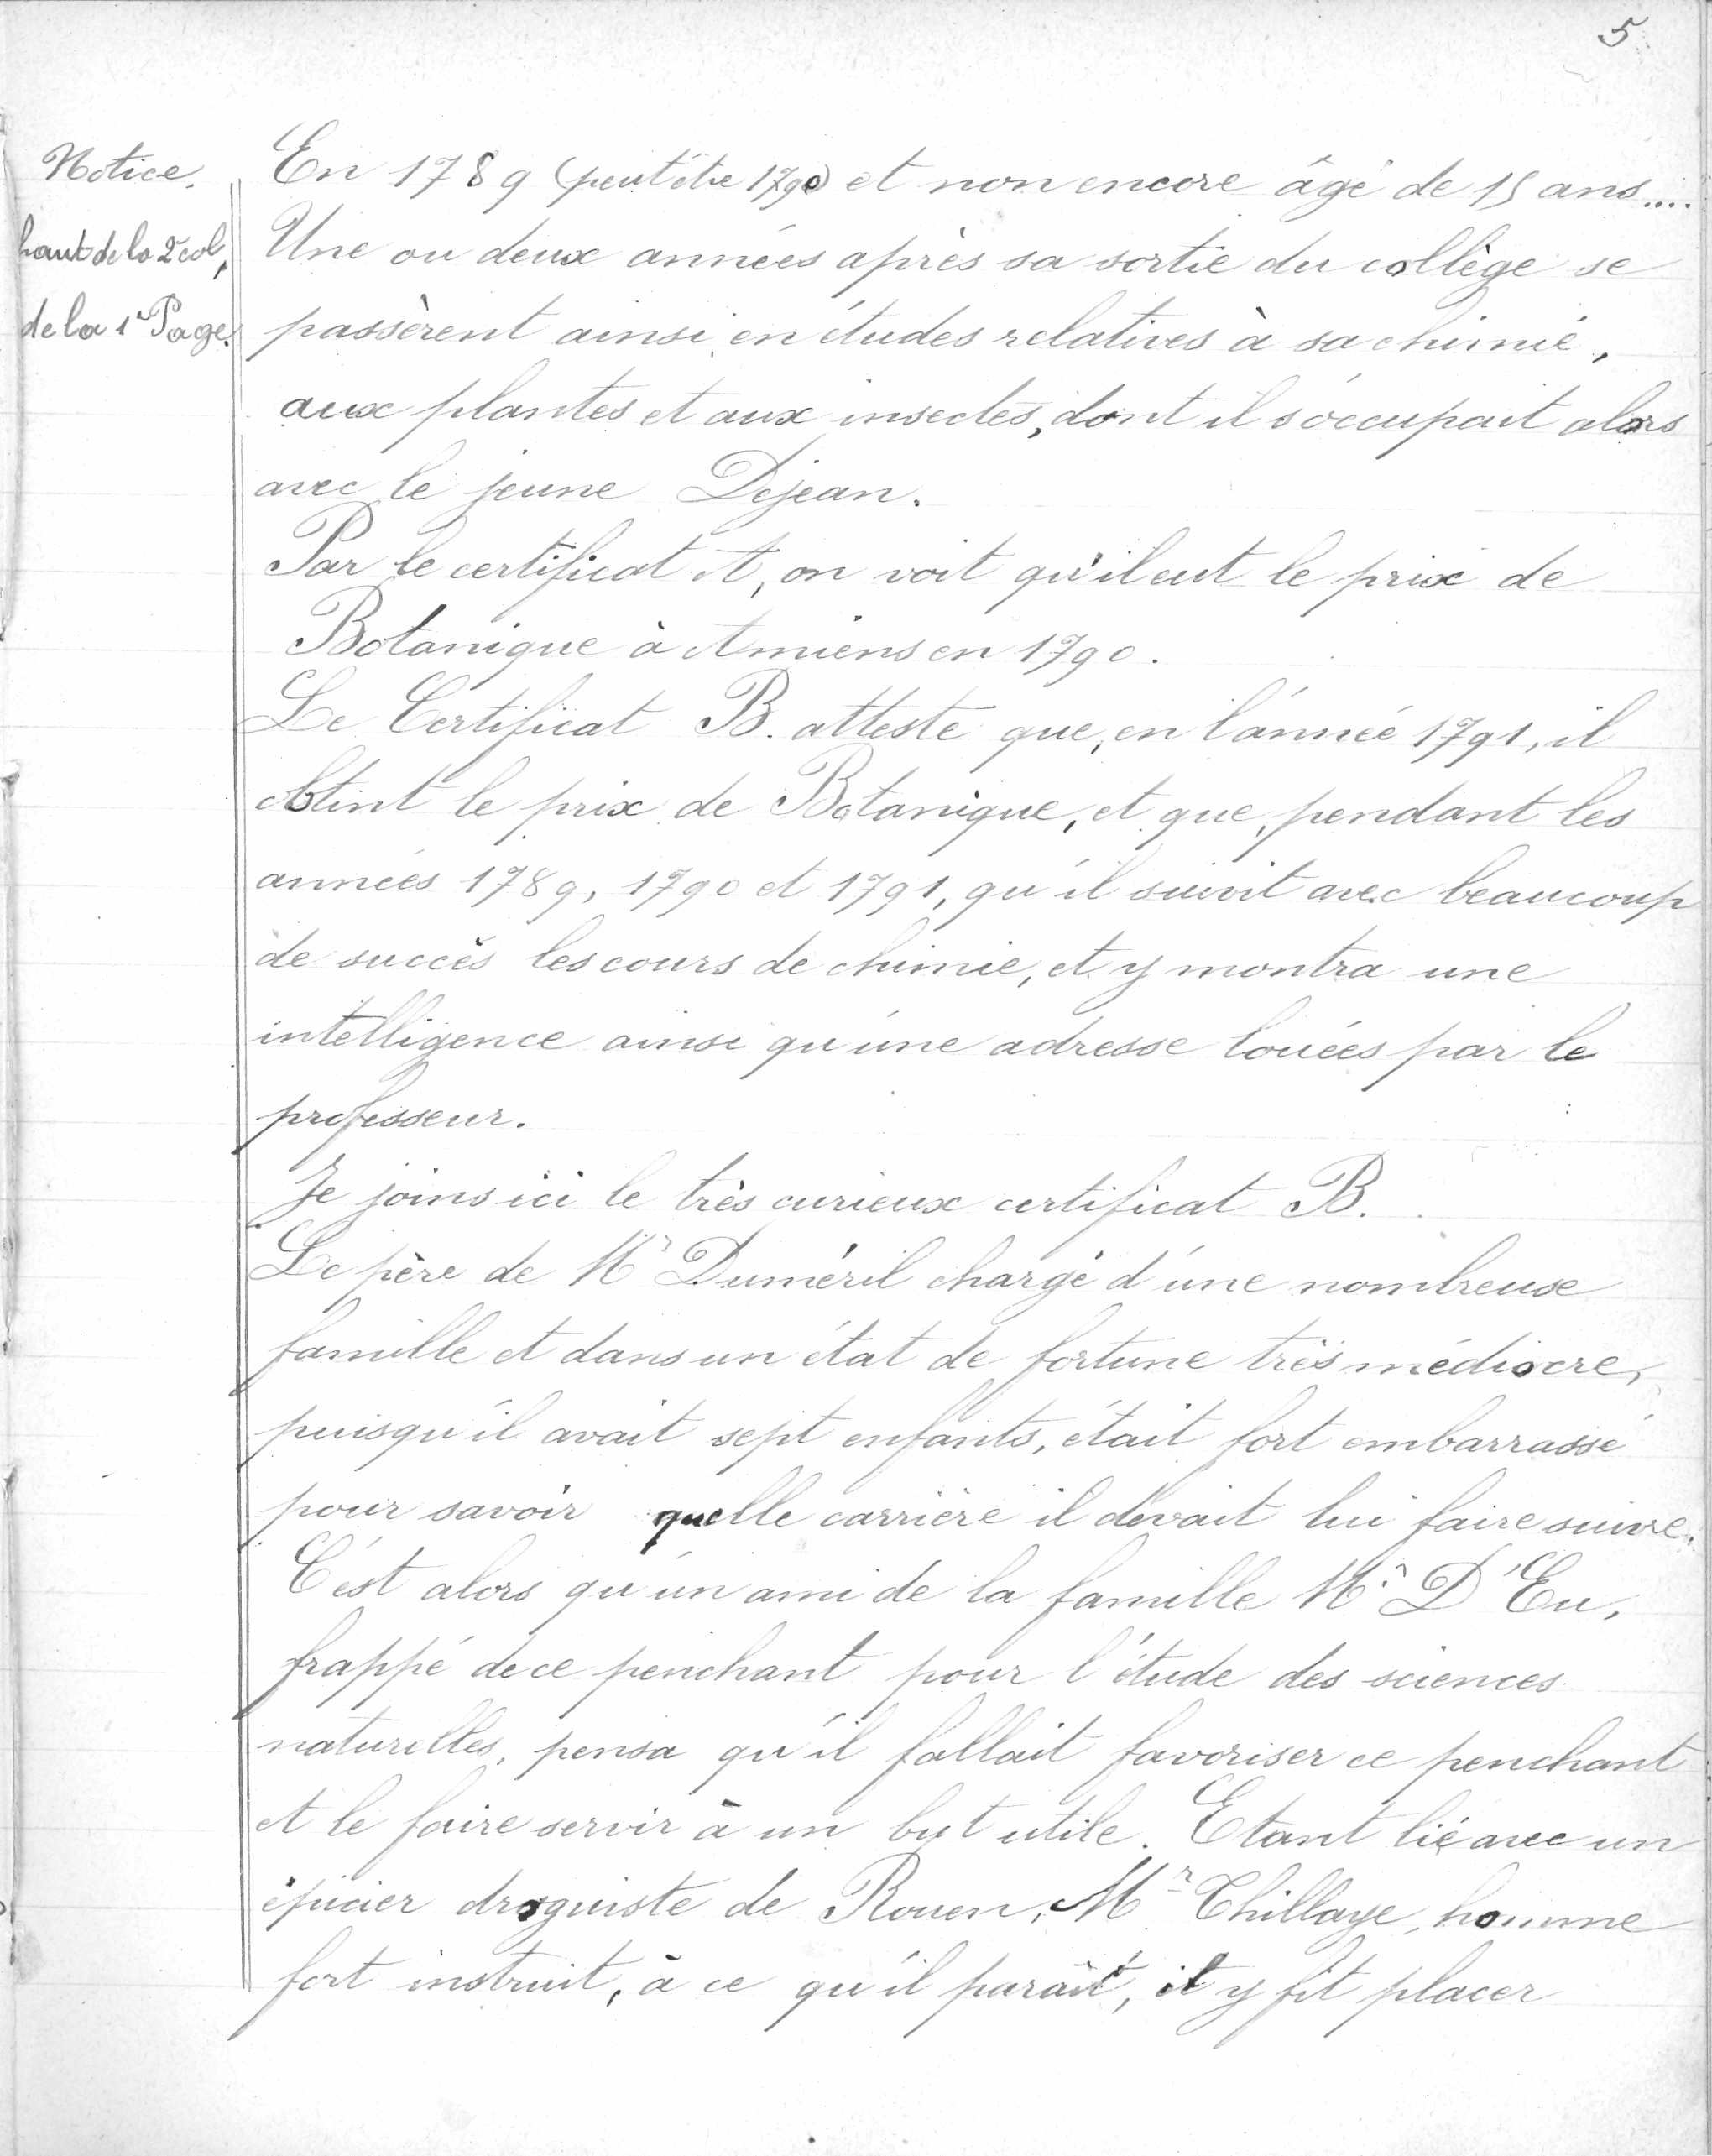 1774-1860. Notes sur André Marie Constant Duméril